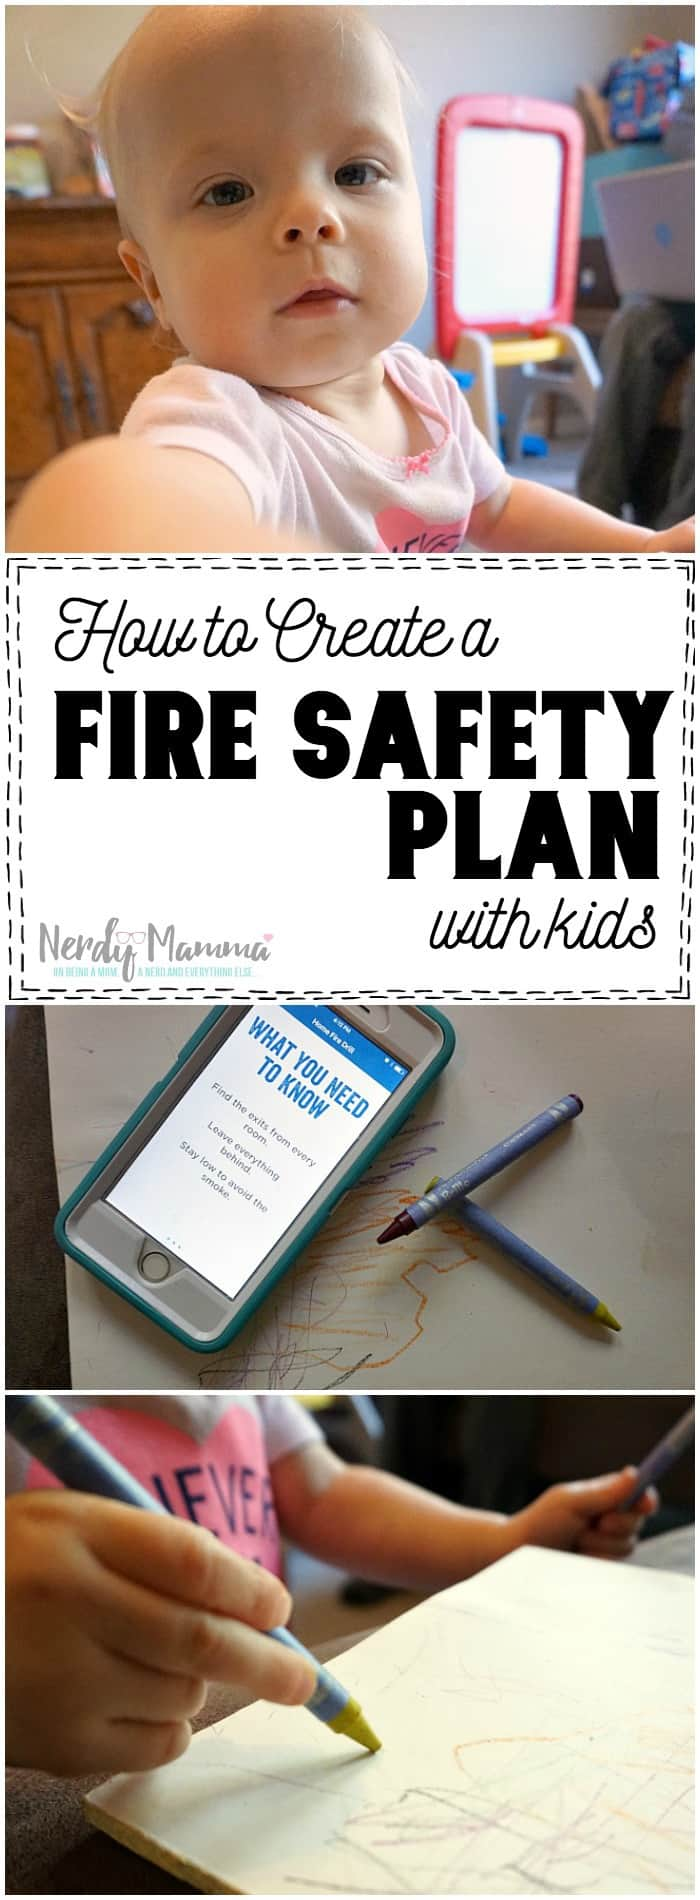 I love this quick tutorial on creating a fire safety plan with kids! So simple and fun.